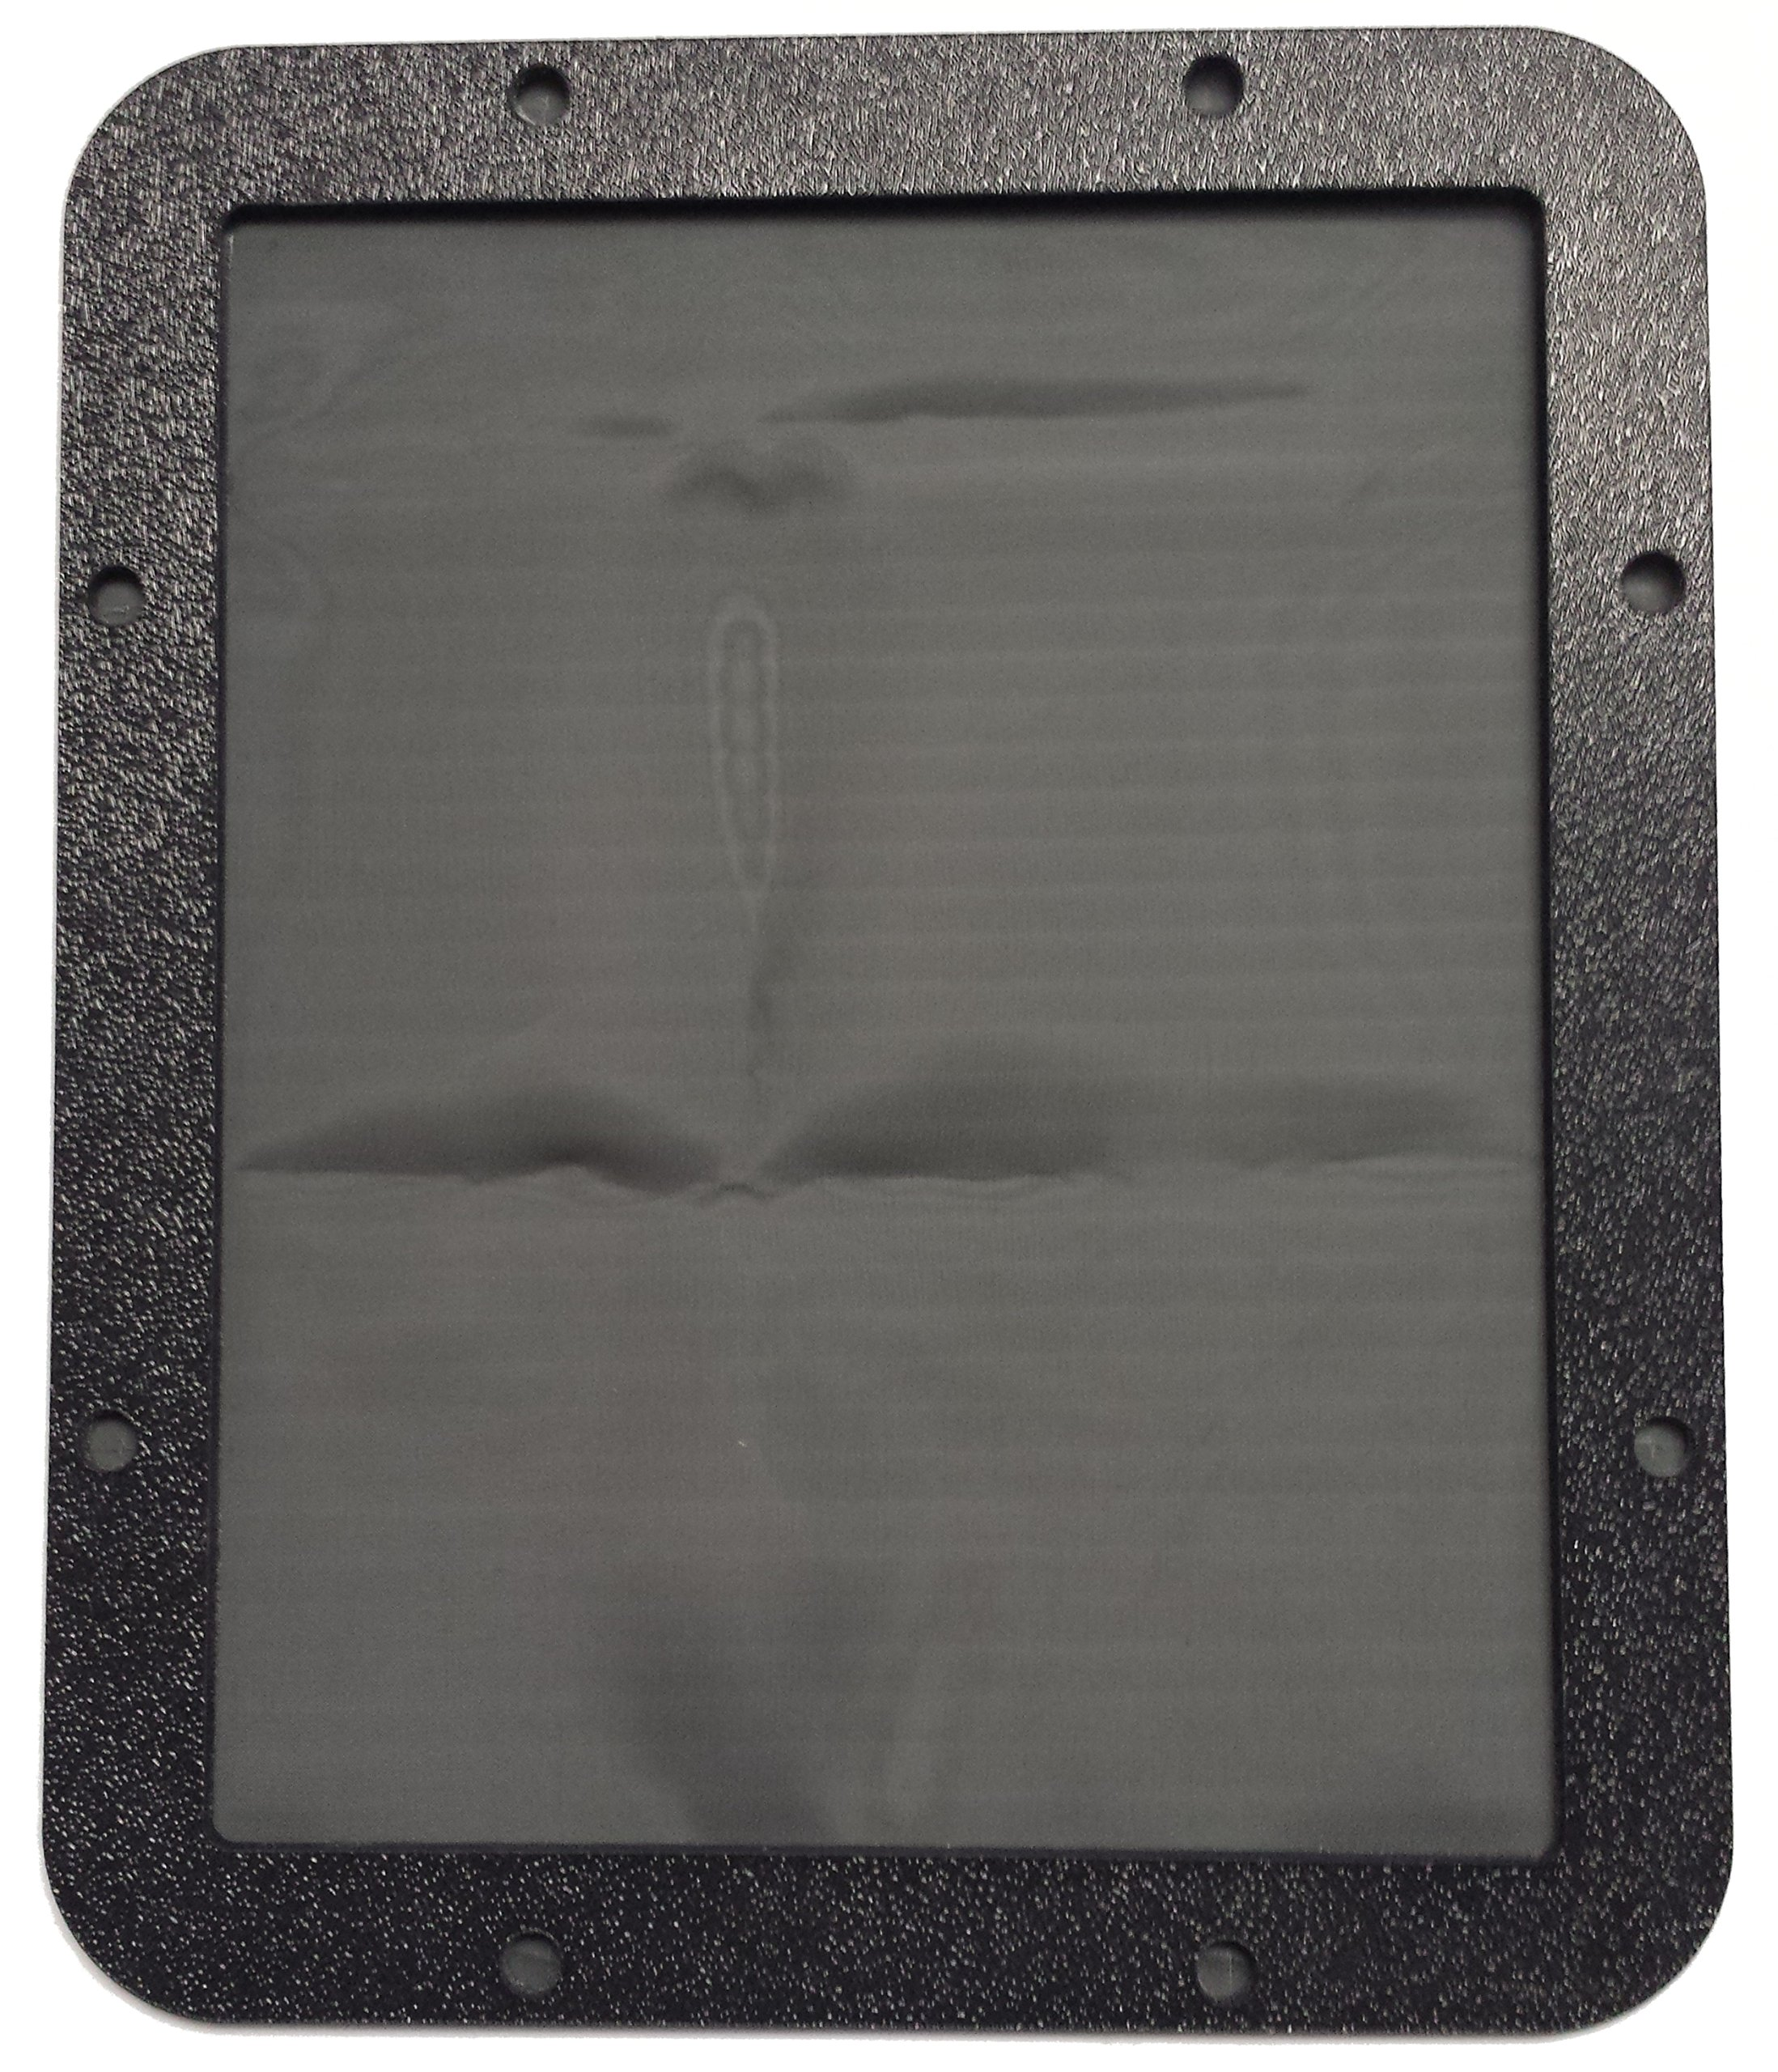 Freedom Air Filters FAFP101486 Black Fresh Air Filter Pre-Filter for Peterbilt Model by Freedom Air Filters